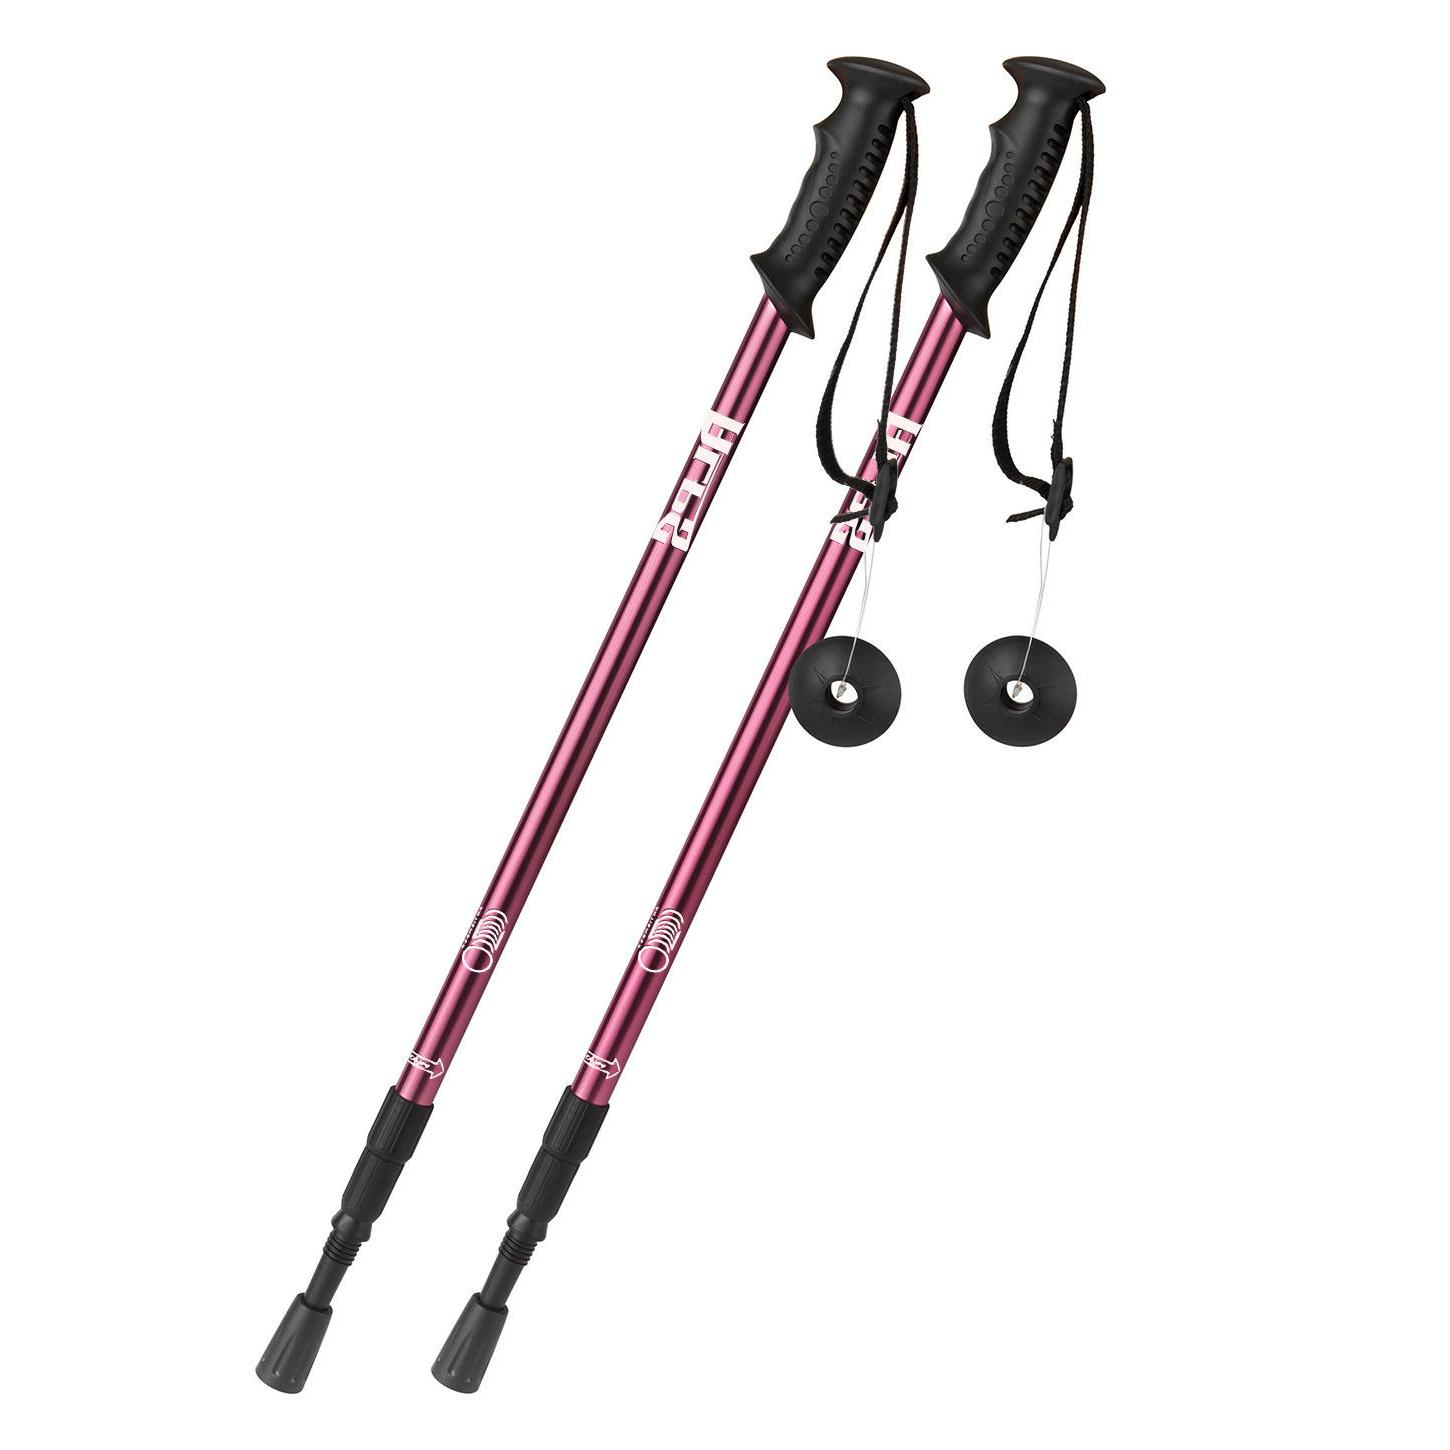 ALPS Pair Poles Walking Sticks 3-Section Adjustable